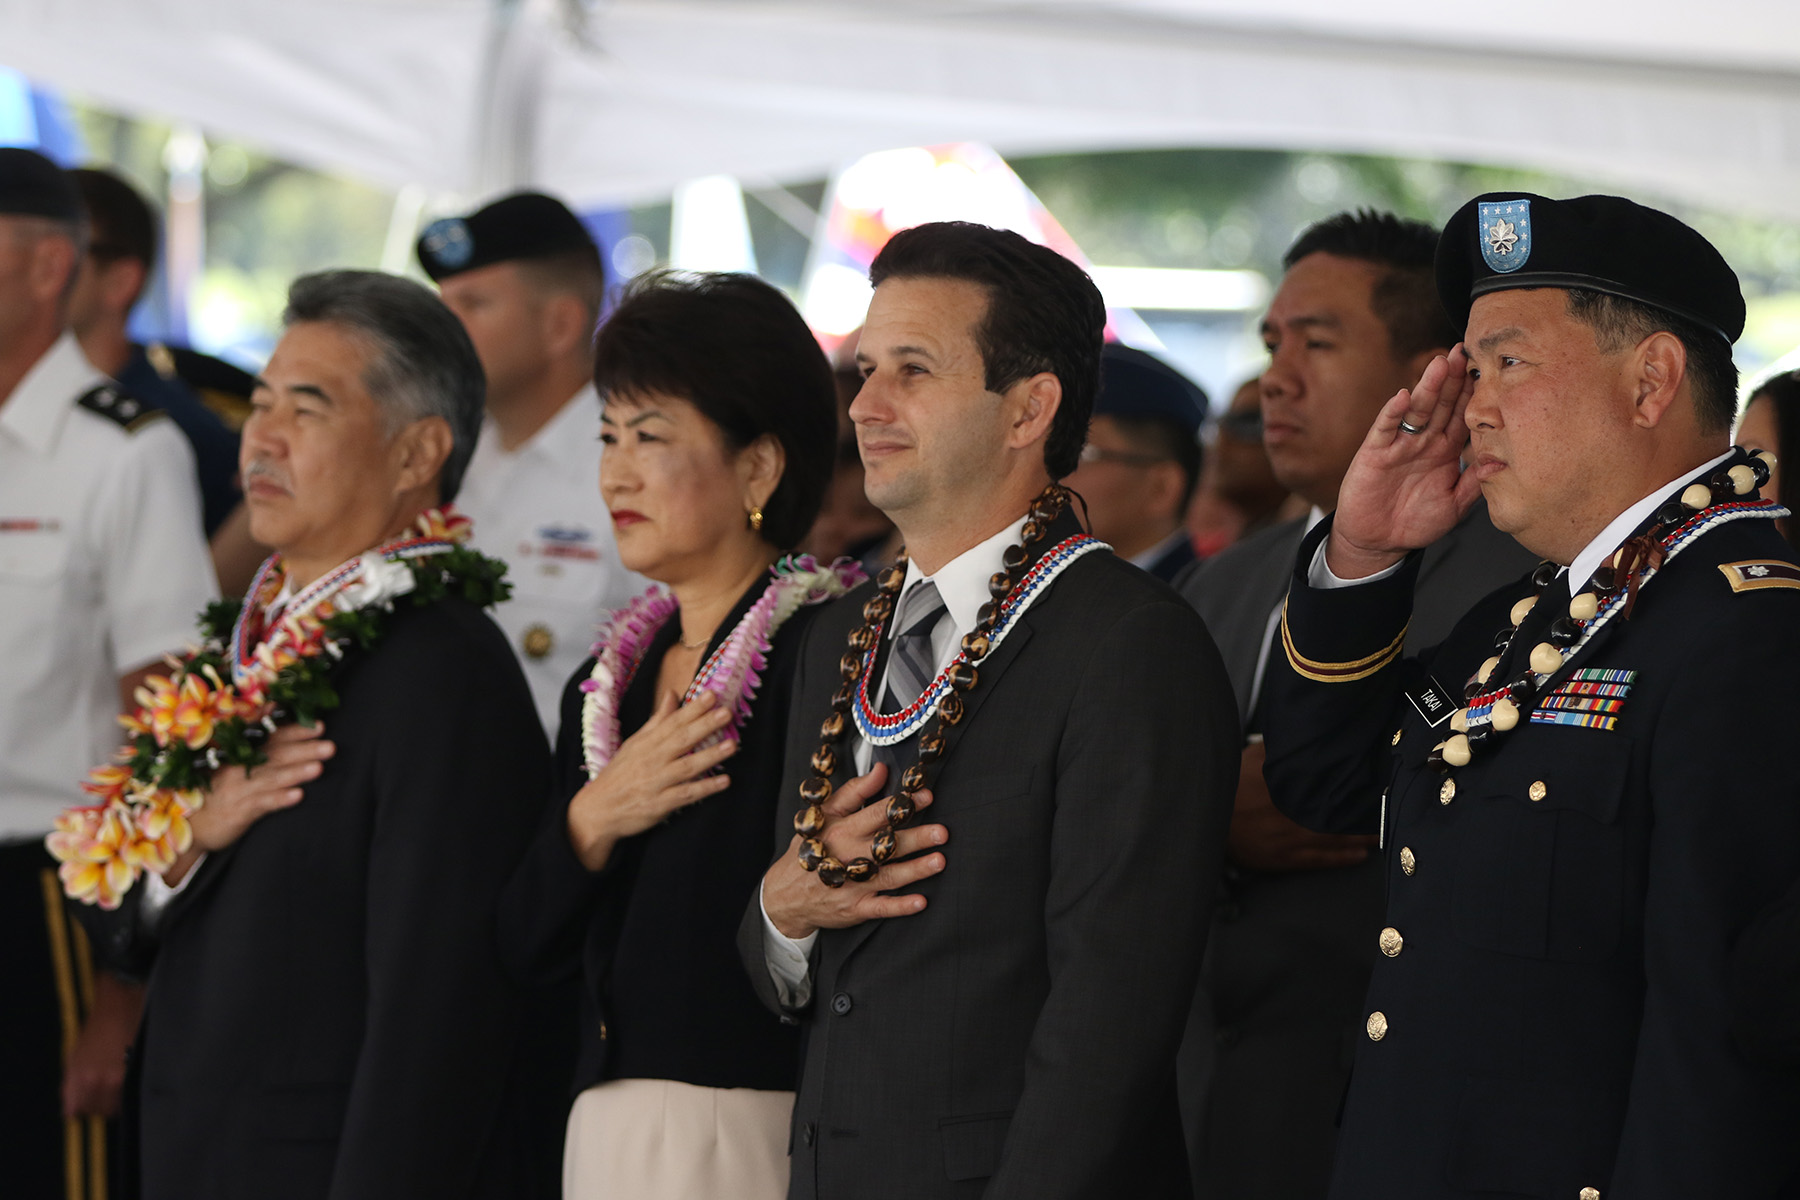 <p><strong>May 2015: Memorial Day Tribute:</strong> Takai, a lieutenant colonel in the Hawaii Army National Guard, salutes during a service at the National Cemetery of the Pacific. Others include, from left, Gov. David Ige, First Lady Dawn Ige, and Sen. Brian Schatz.</p>